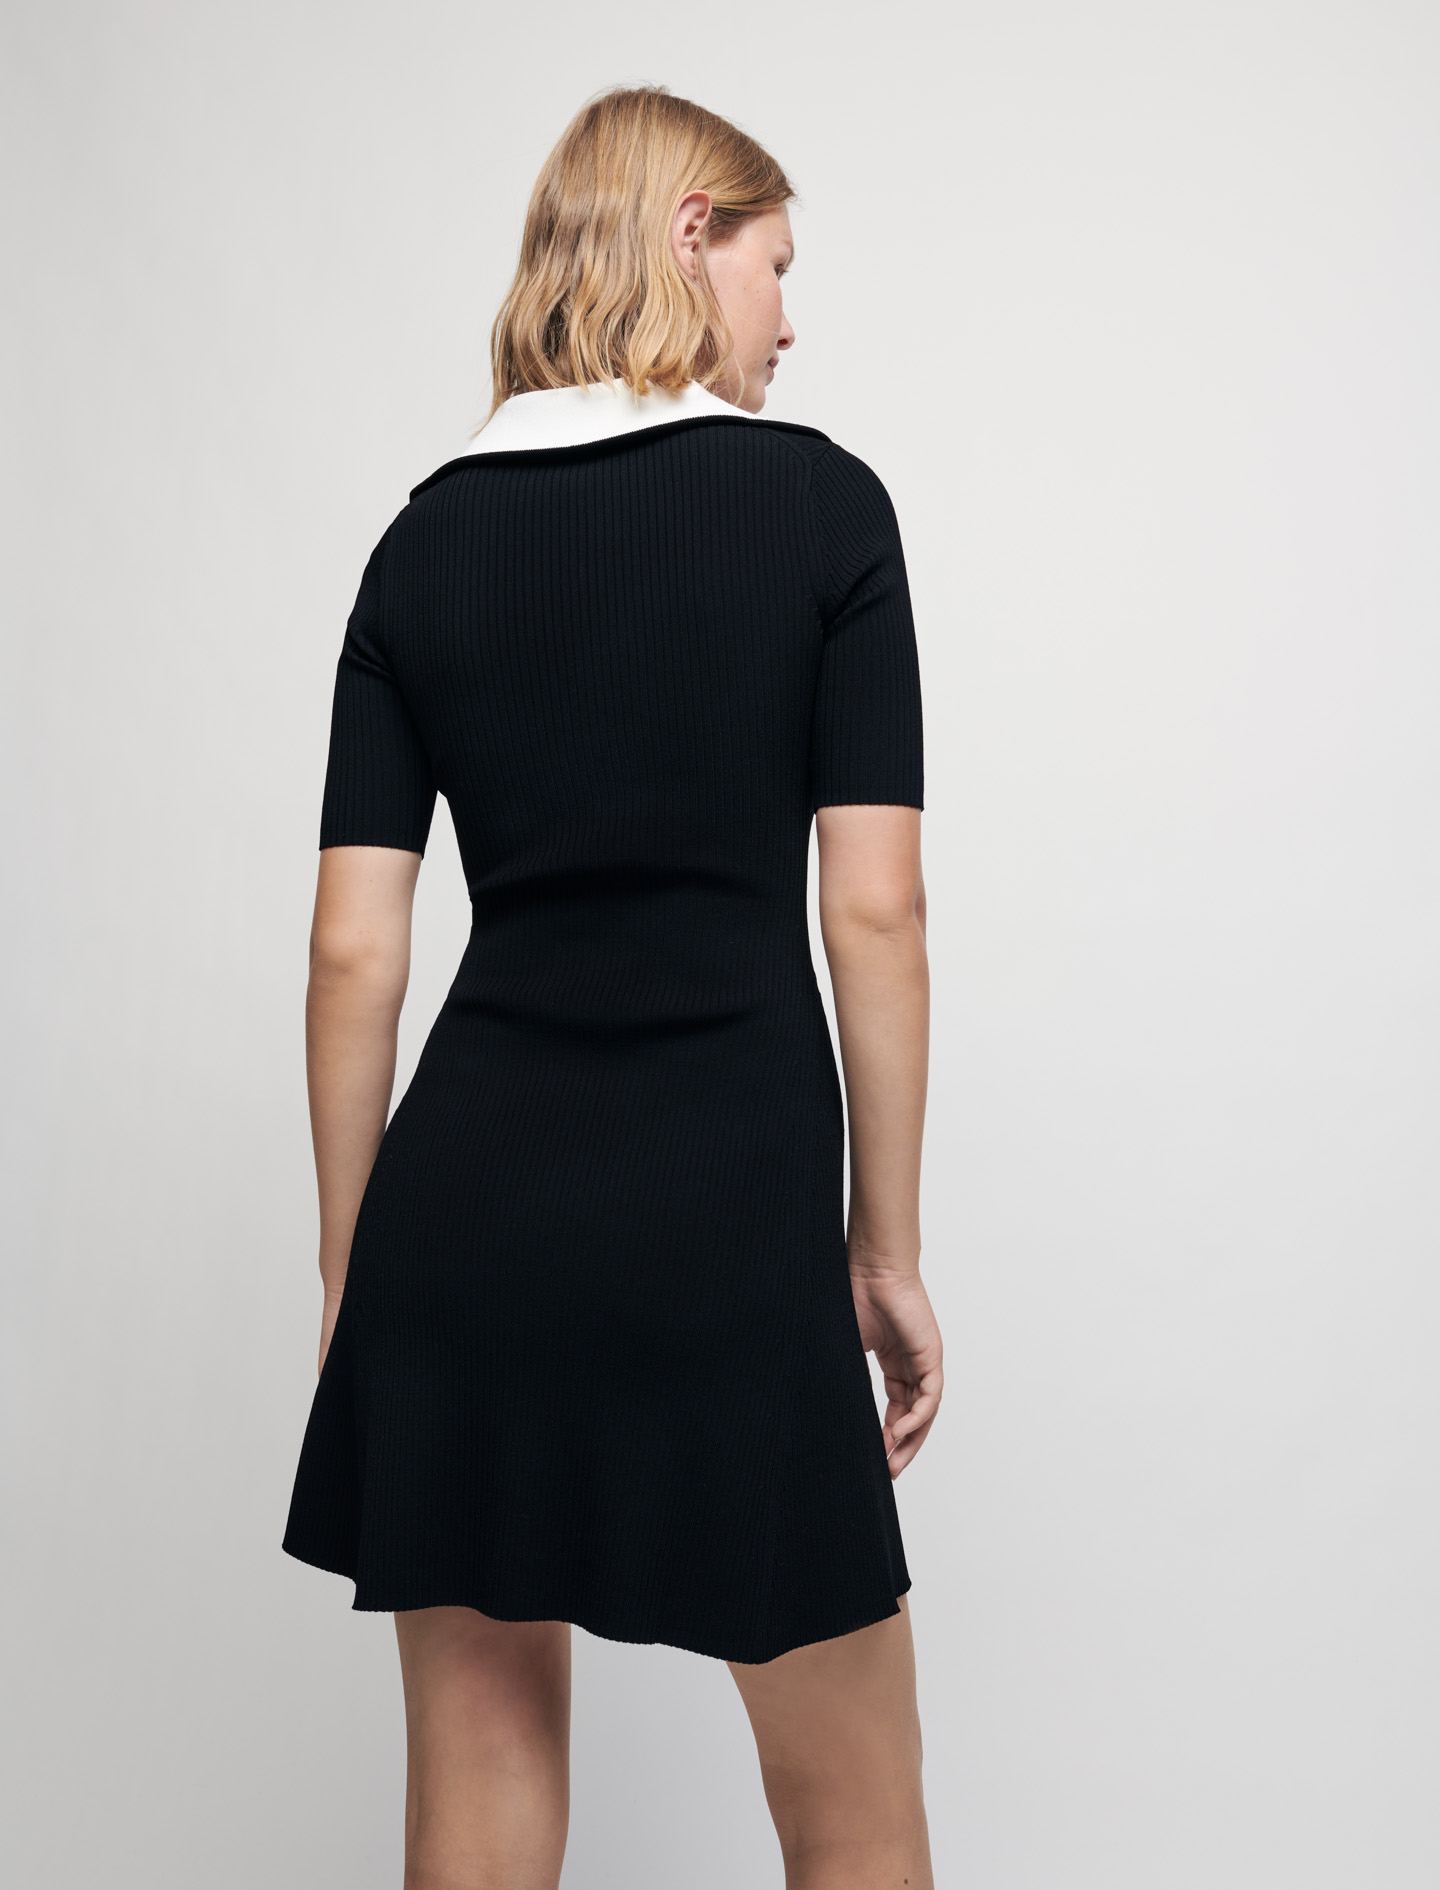 Ribbed knit dress with zip collar - Black